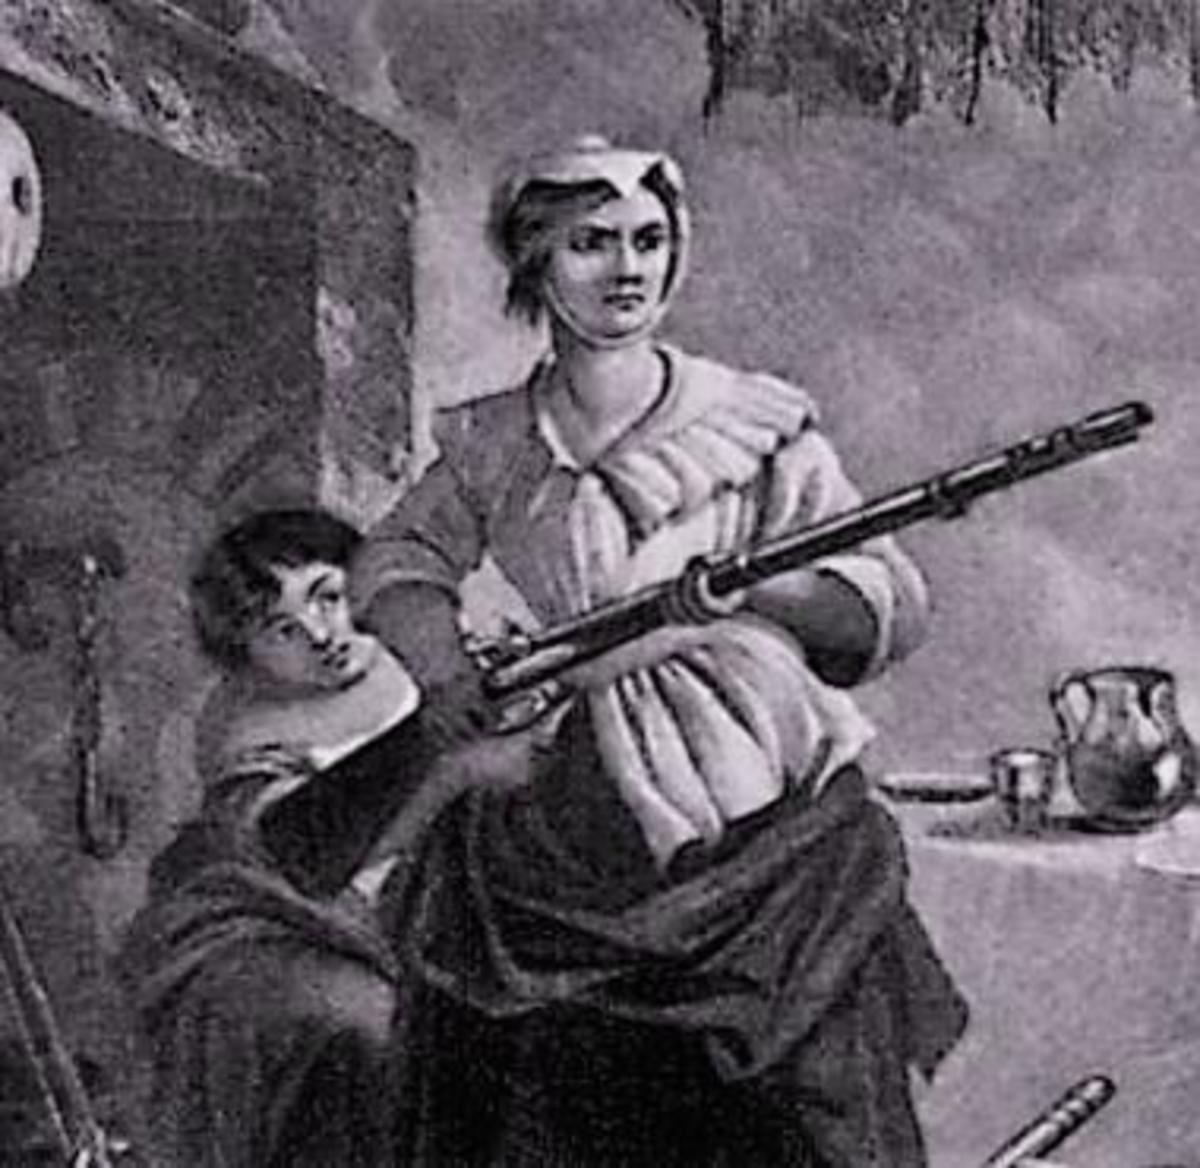 When British soldiers invaded her home, Nancy managed to seize on of their guns and killed one man and captured the rest.